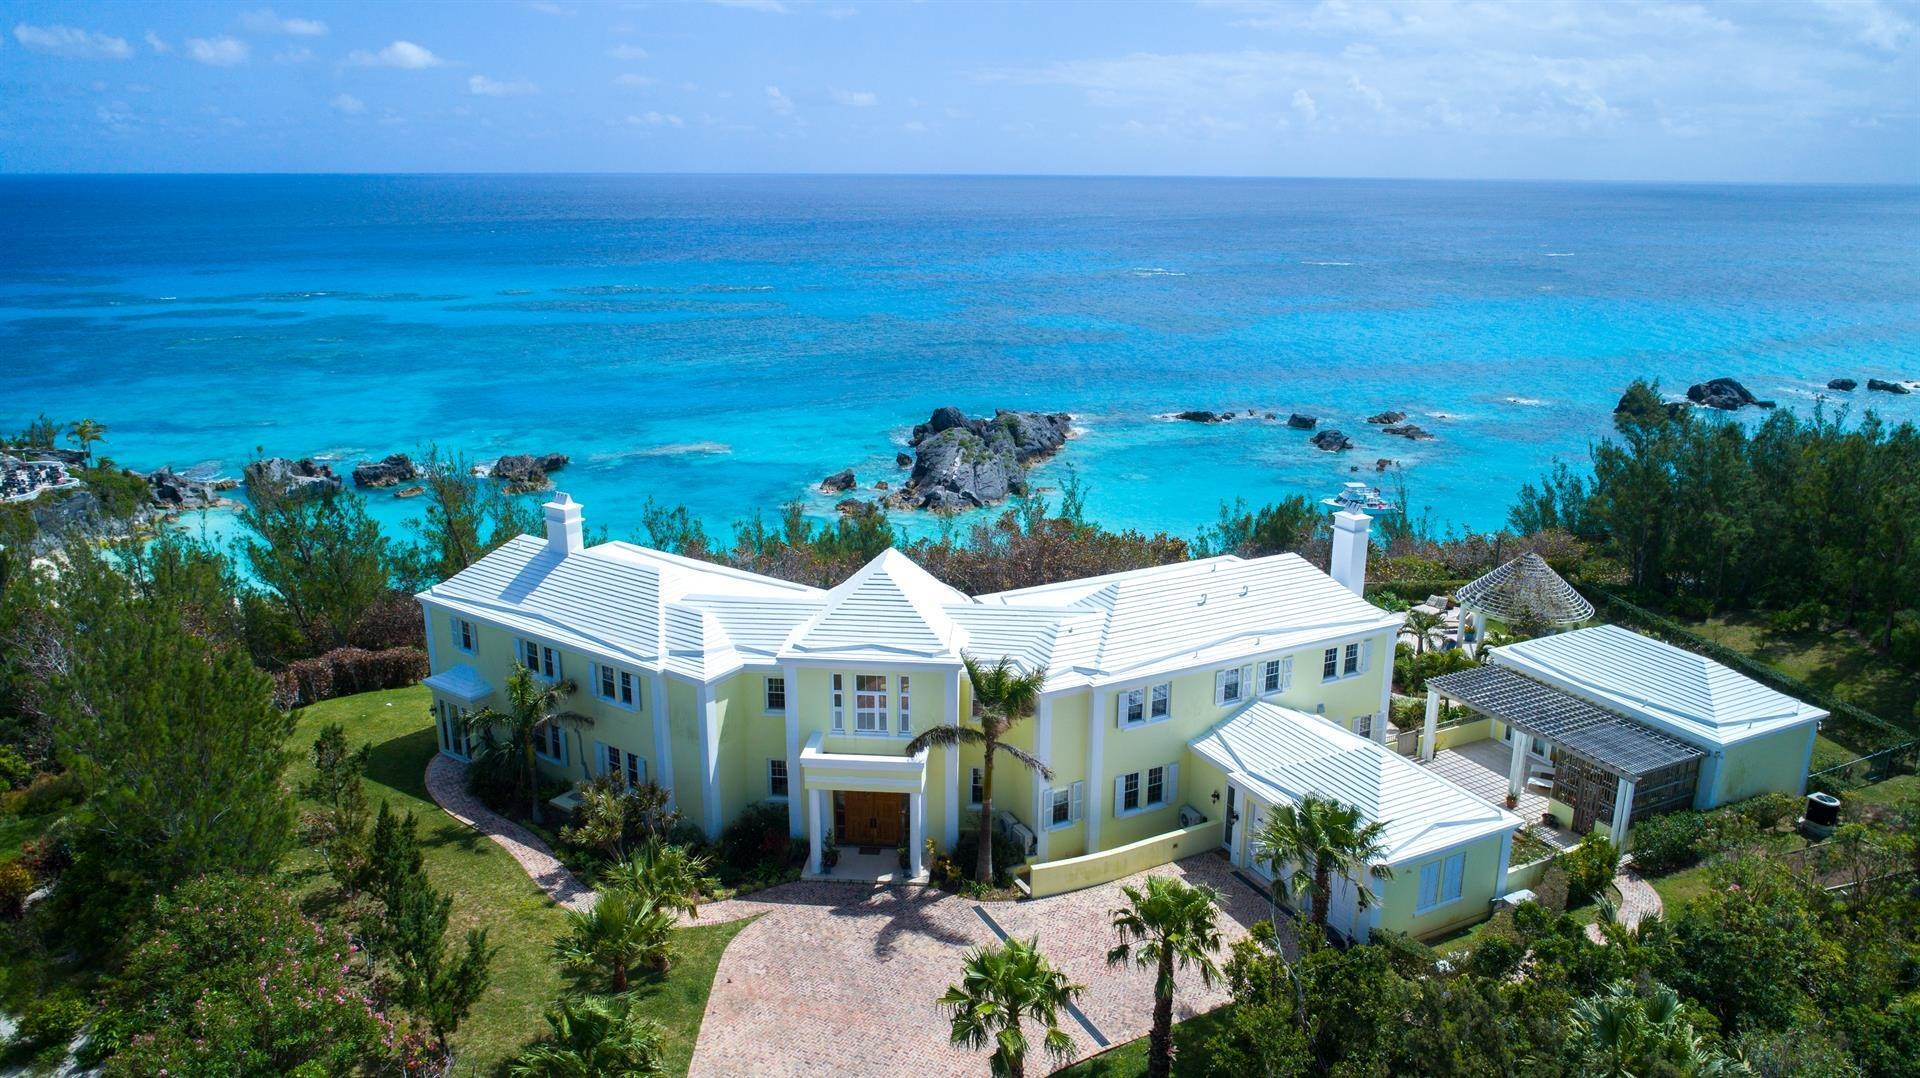 Single Family Home por un Venta en Duamber At The Fairmont Southampton 119 Harbour View Drive Southampton Parish, Bermuda,SN02 Bermuda